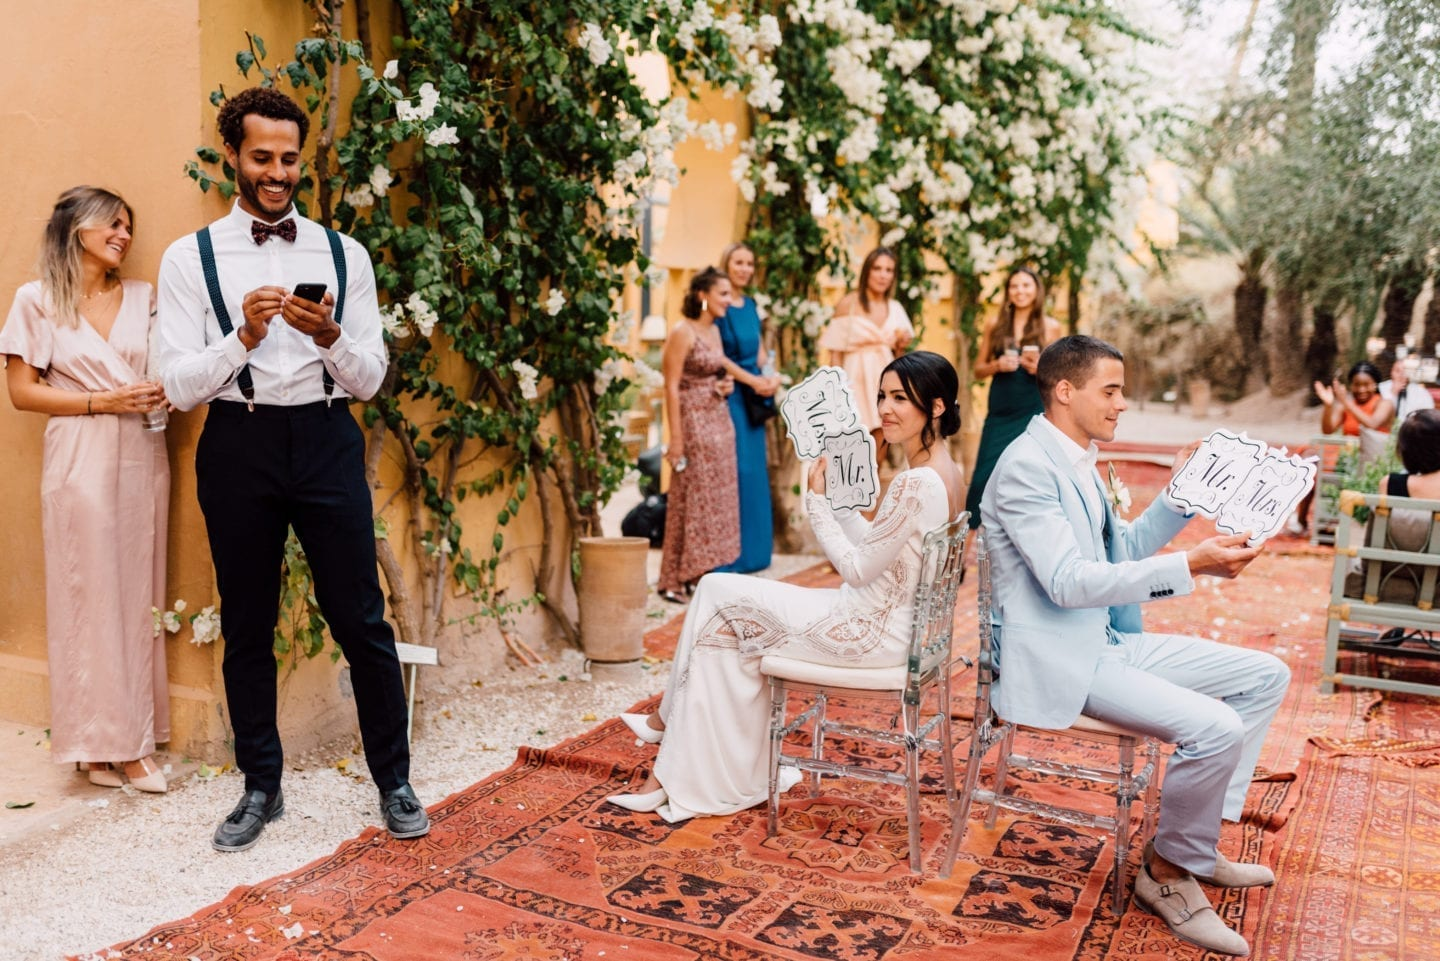 Marrakech wedding planner Morocco Jnane Tamsna Palmeraie marriage bruiloft wedding